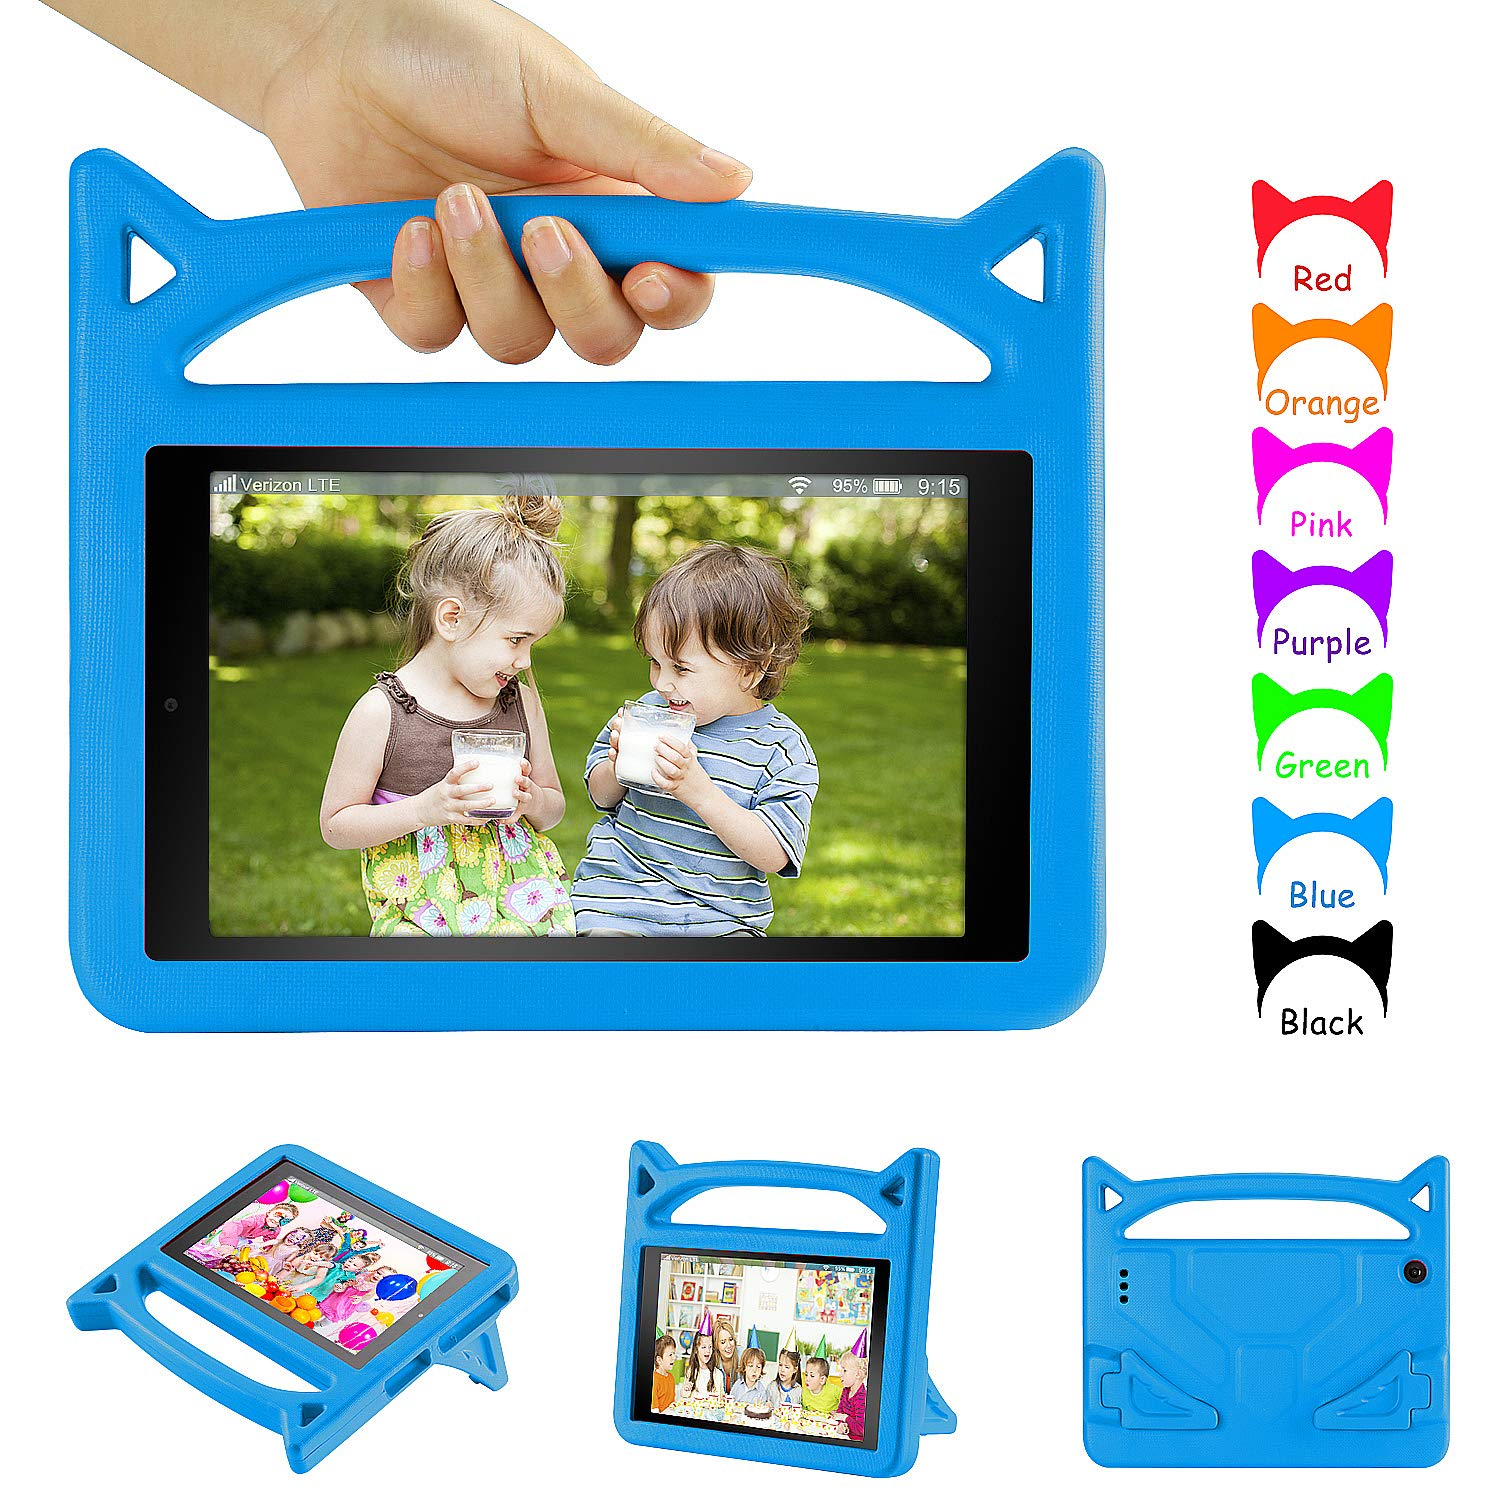 All New Fire 7 2019 Case, Fire 7 Kids Case - DiHines Light Weight Shock Proof Handle Friendly Stand Kid-Proof Case for Amazon Fire 7 Tablet Cover(2015&2017&2019 Release) Blue